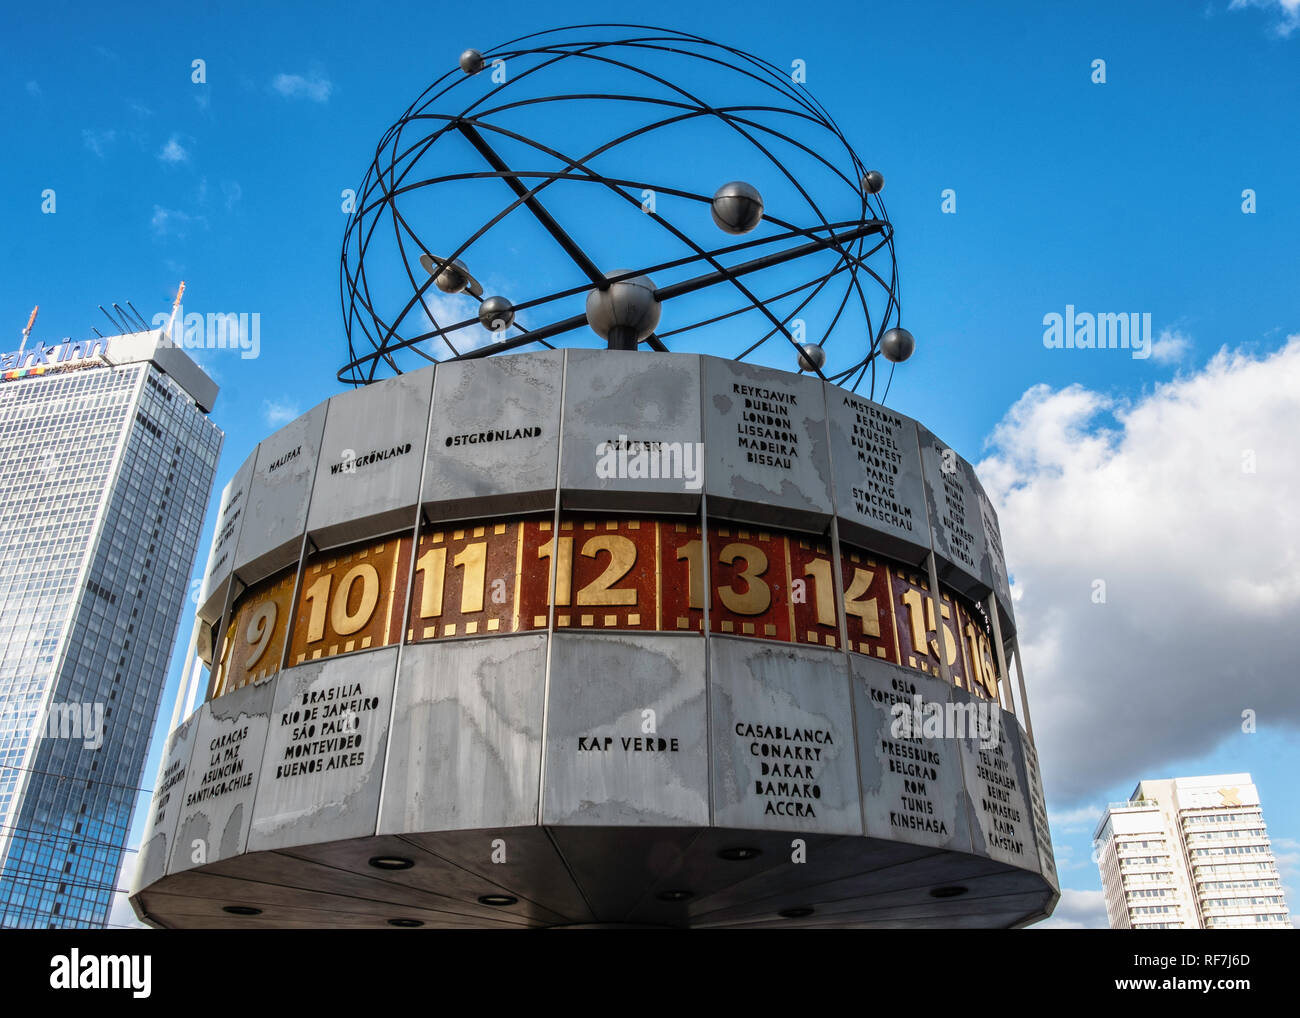 The World Clock or Urania Clock is large turret-style world clock at Alexanderplatz Mitte, Berlin.  It shows the current time of 148 world cities - Stock Image